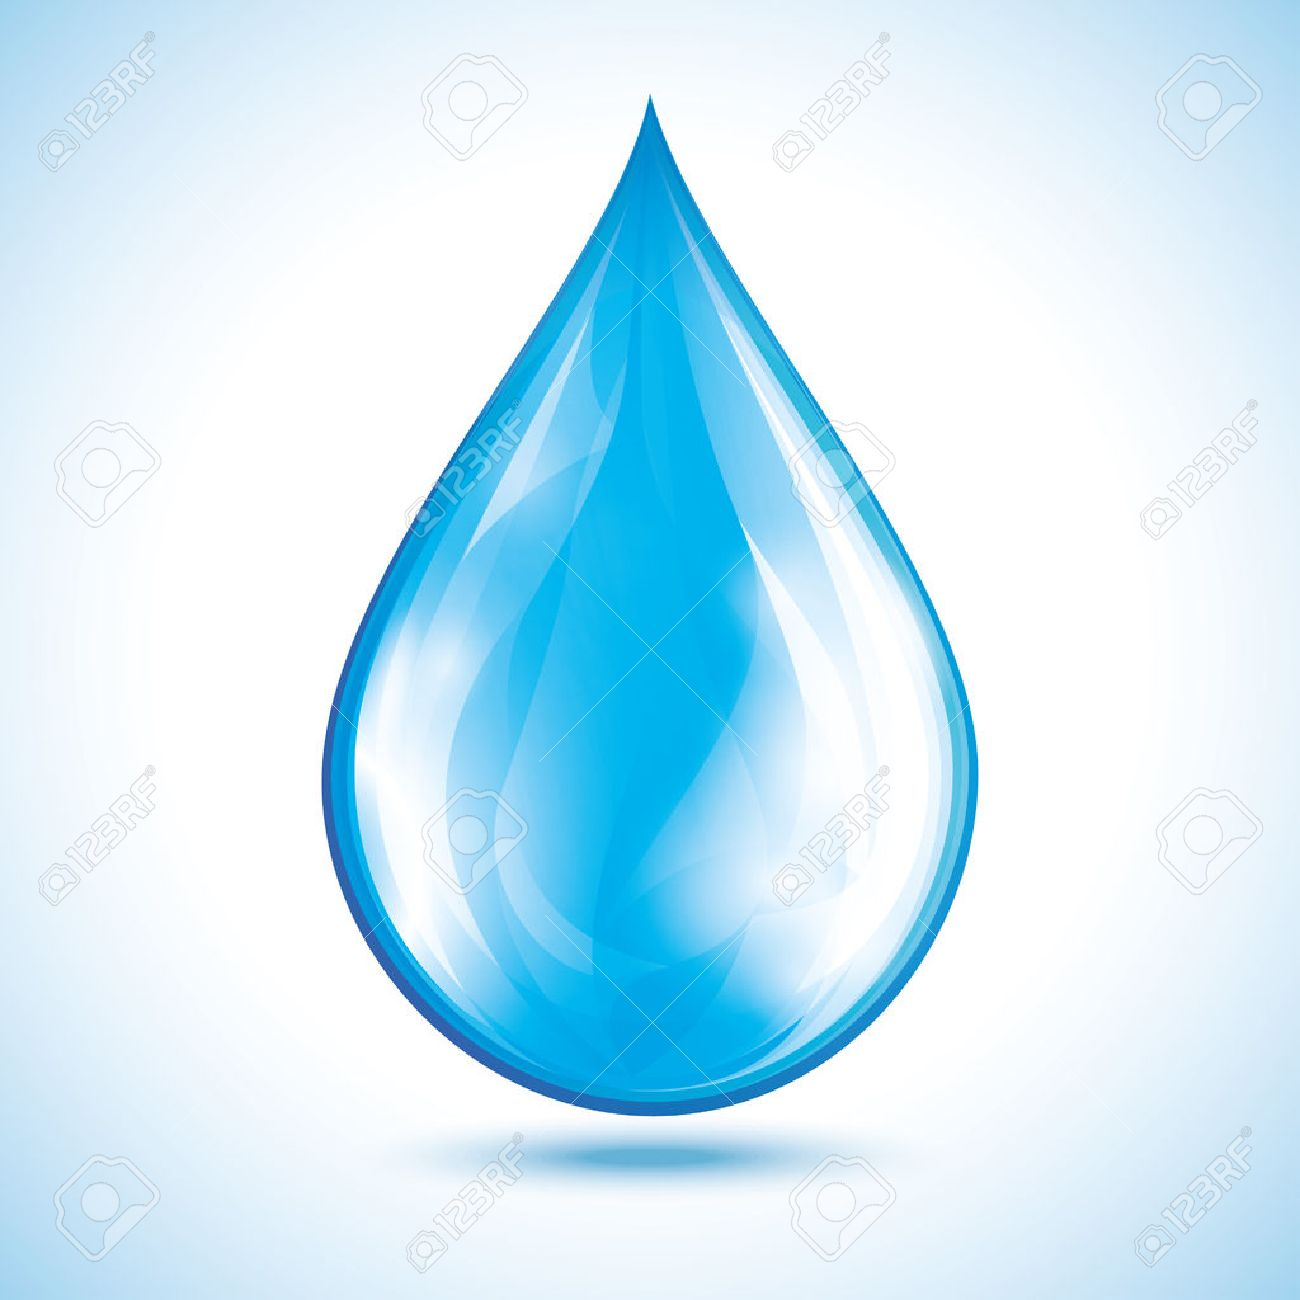 Water element clipart